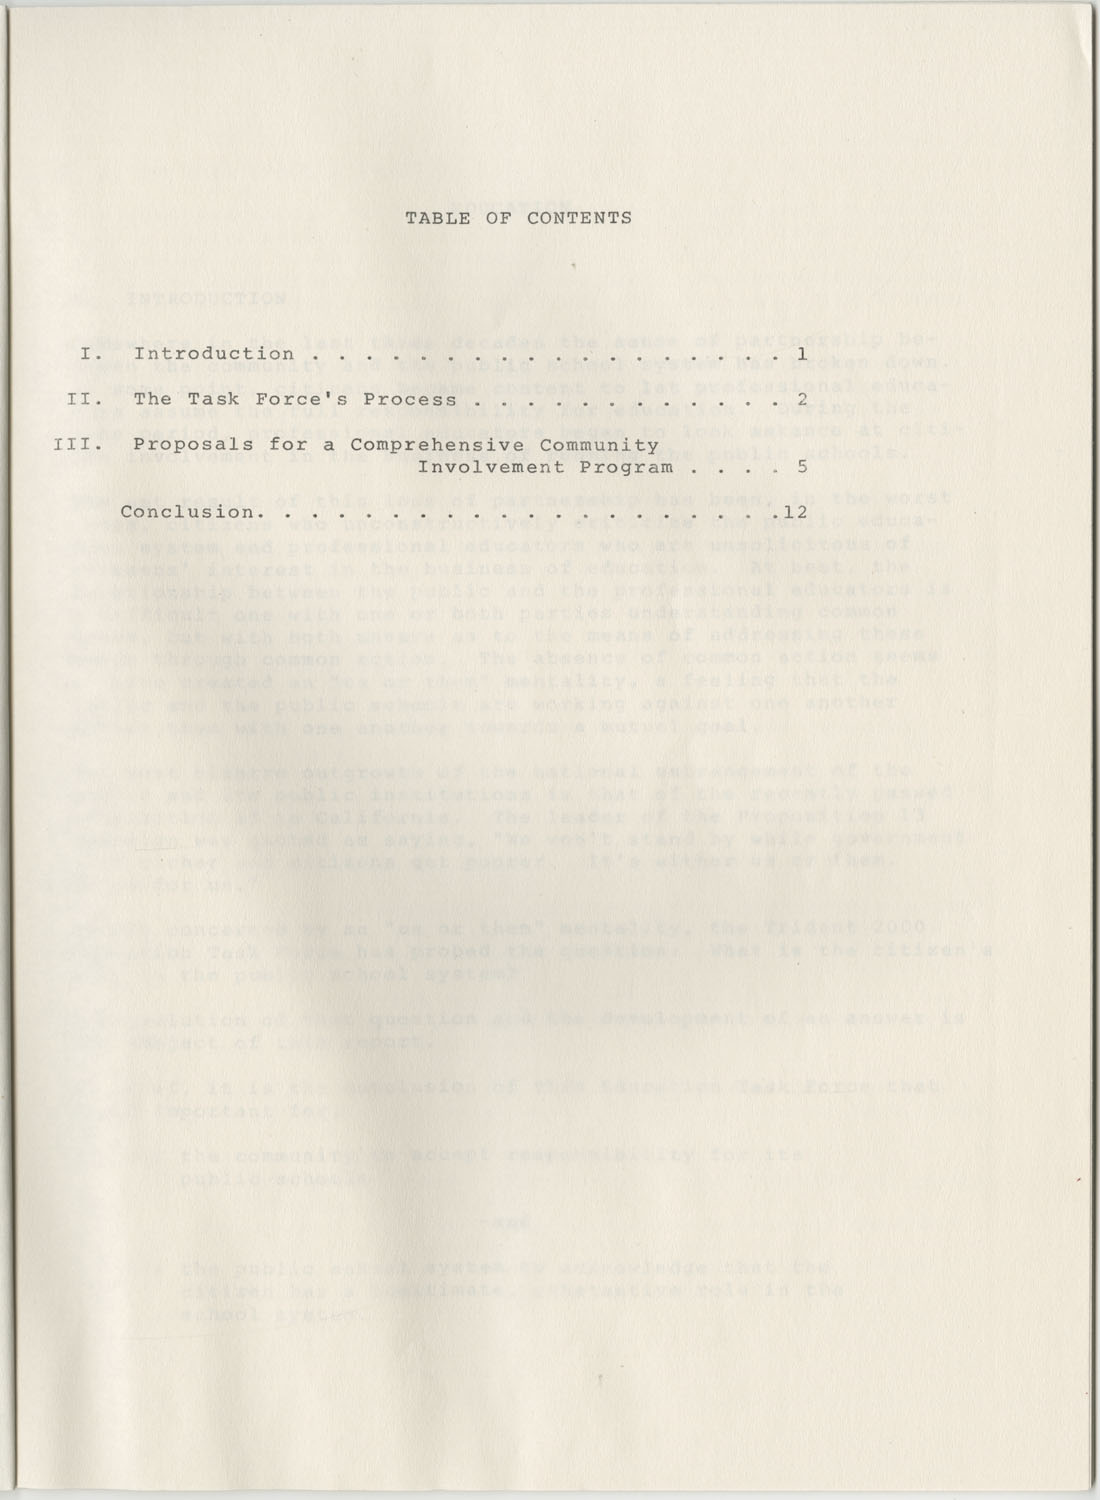 Trident 2000 Task Force Reports on Education, June 1978, Table of Contents